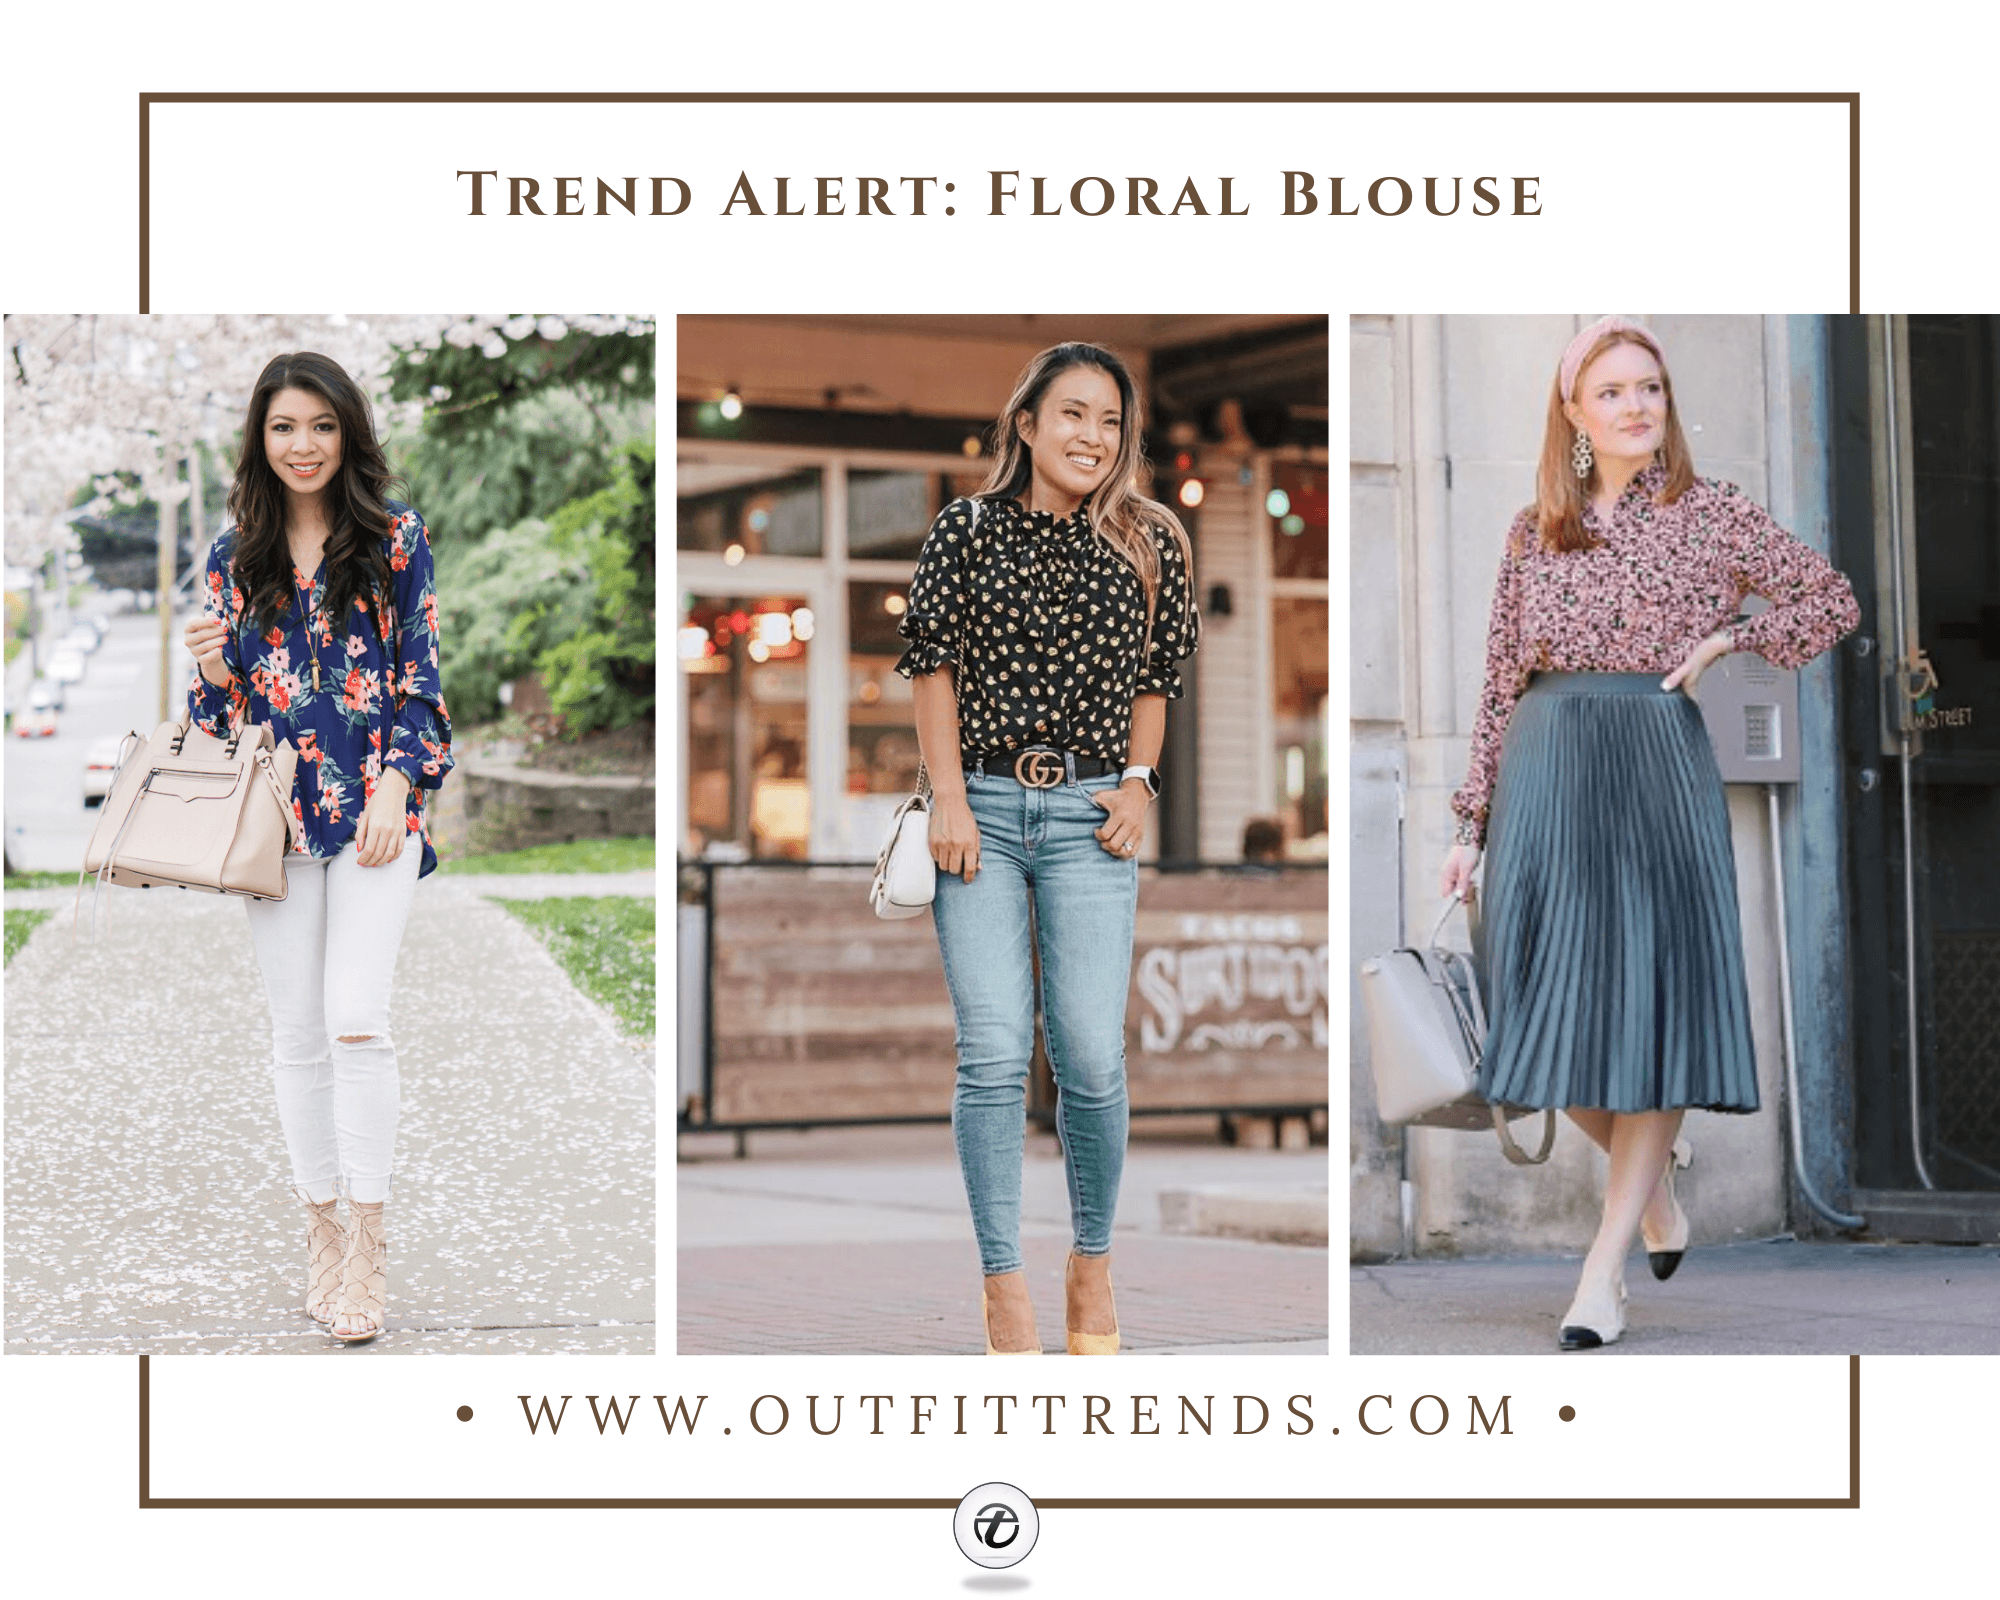 Girls Floral Blouse Outfits-30 Ways To Style a Floral Blouse